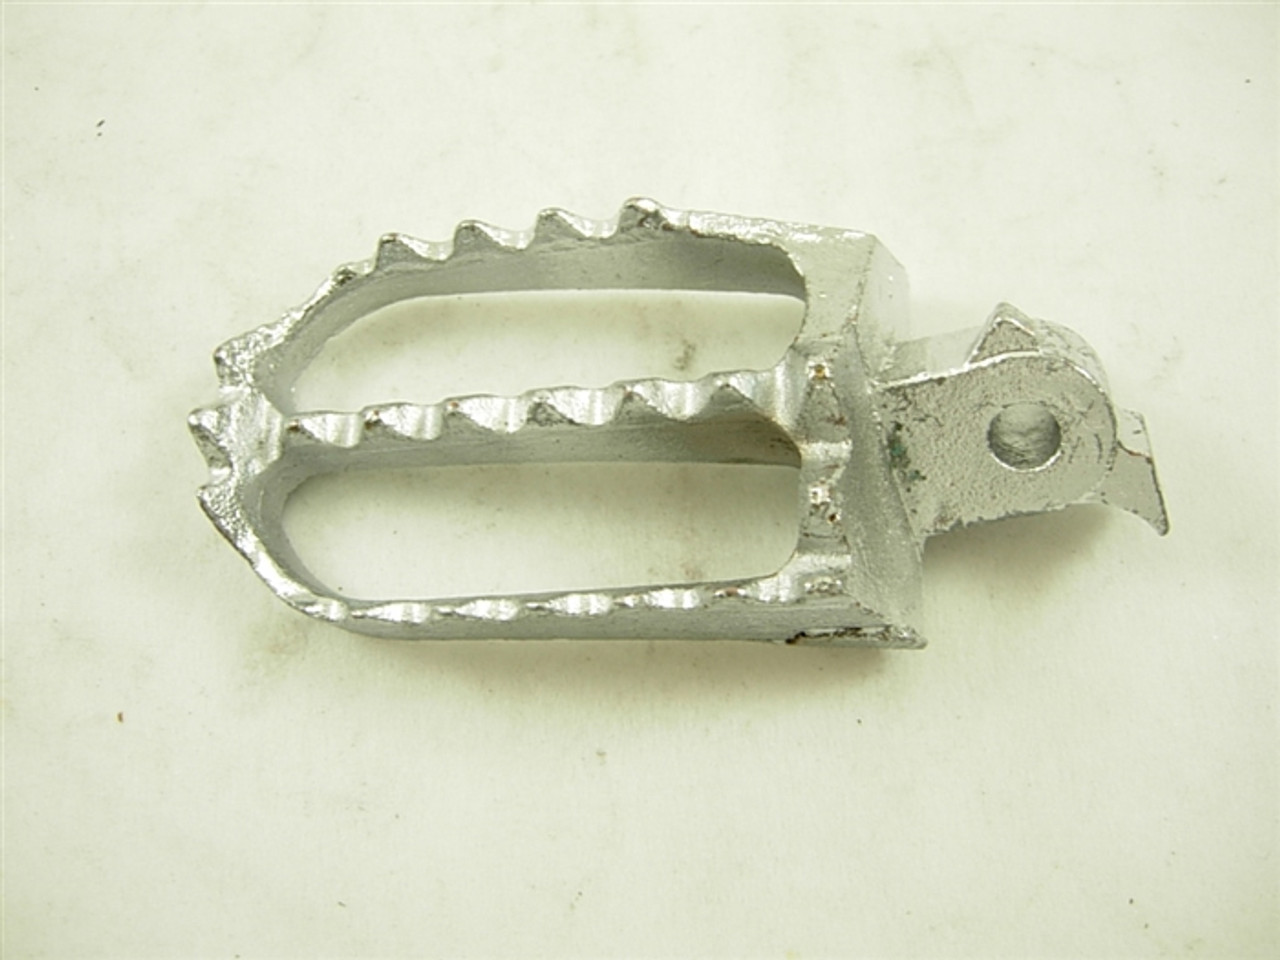 FOOT PEG RIGHT 12928-A163-12